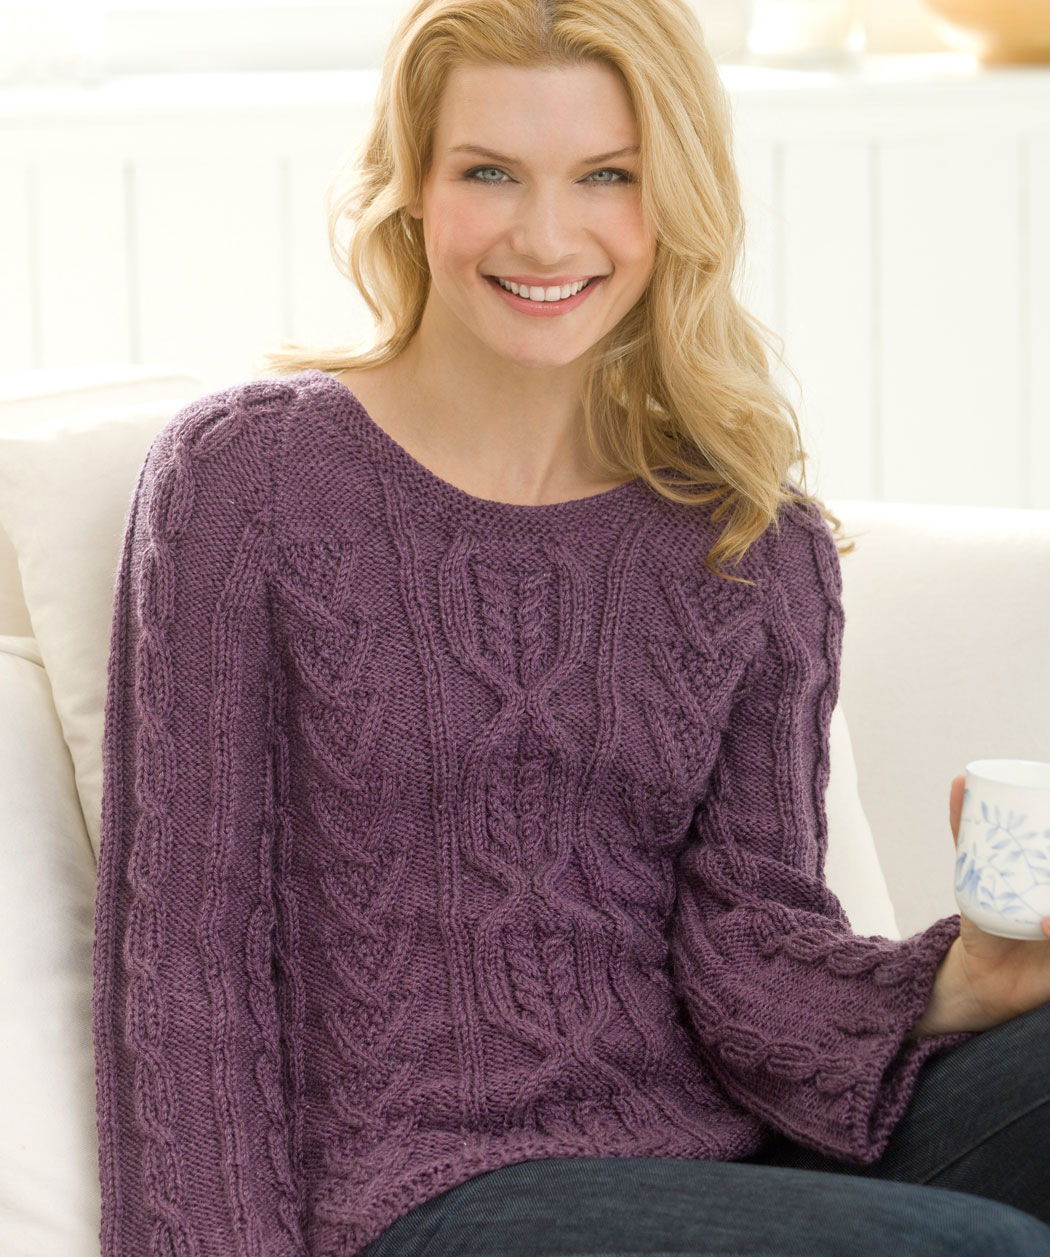 Free Japanese Knitting Patterns English : Cable Knit Sweater Patterns A Knitting Blog